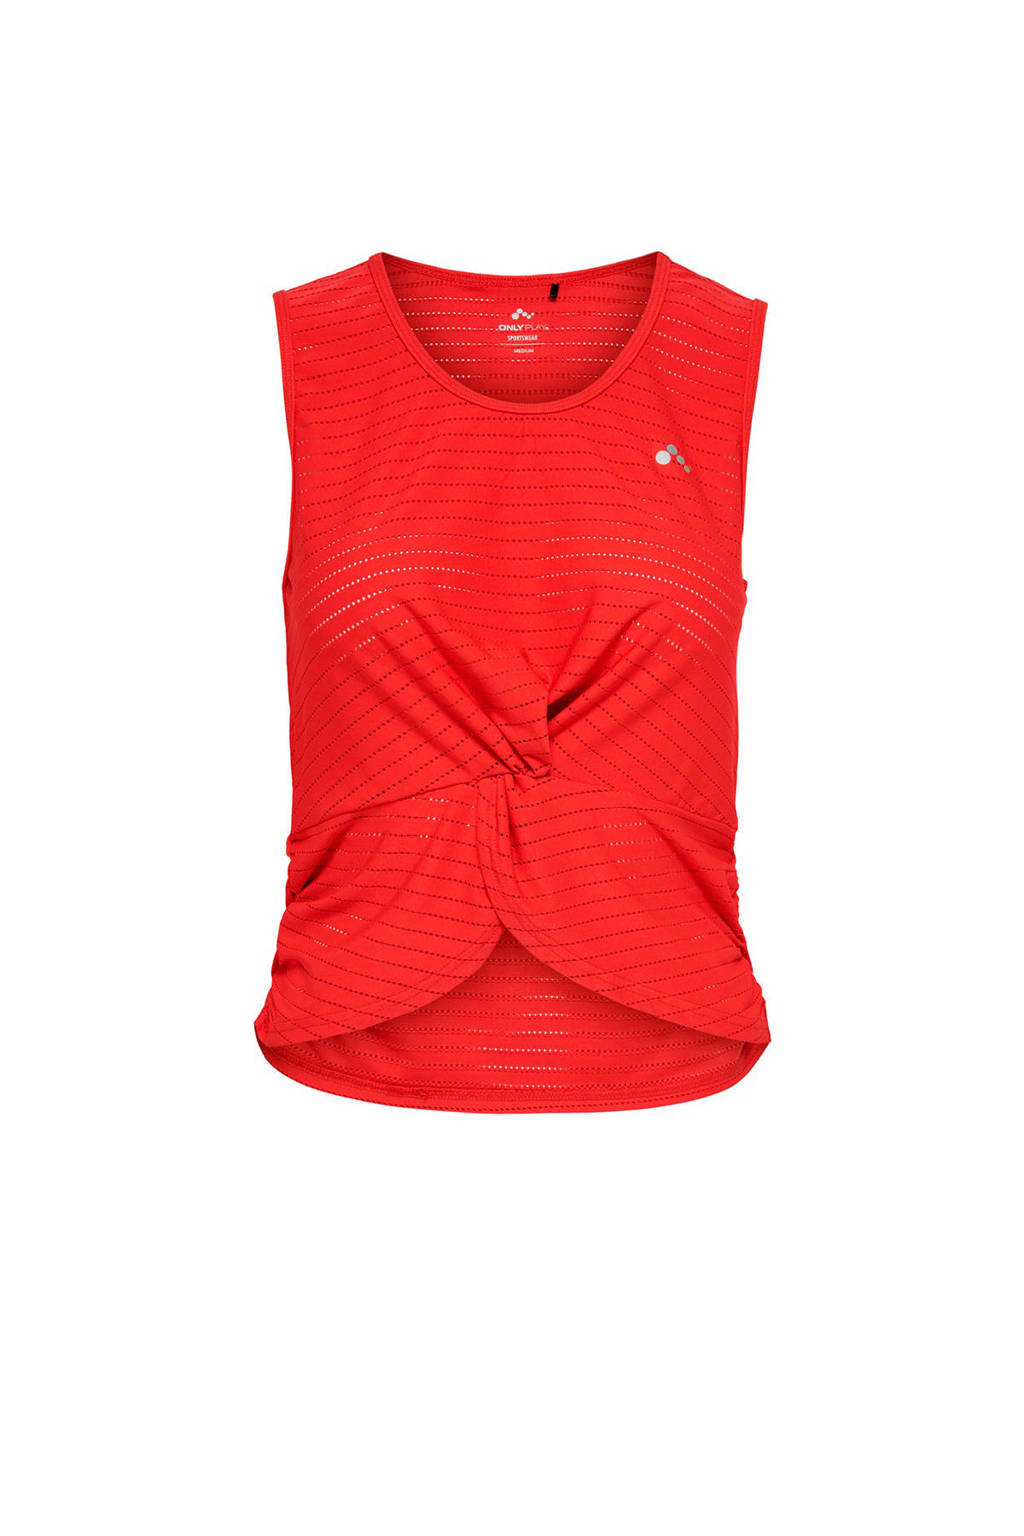 ONLY PLAY sporttop rood, Rood